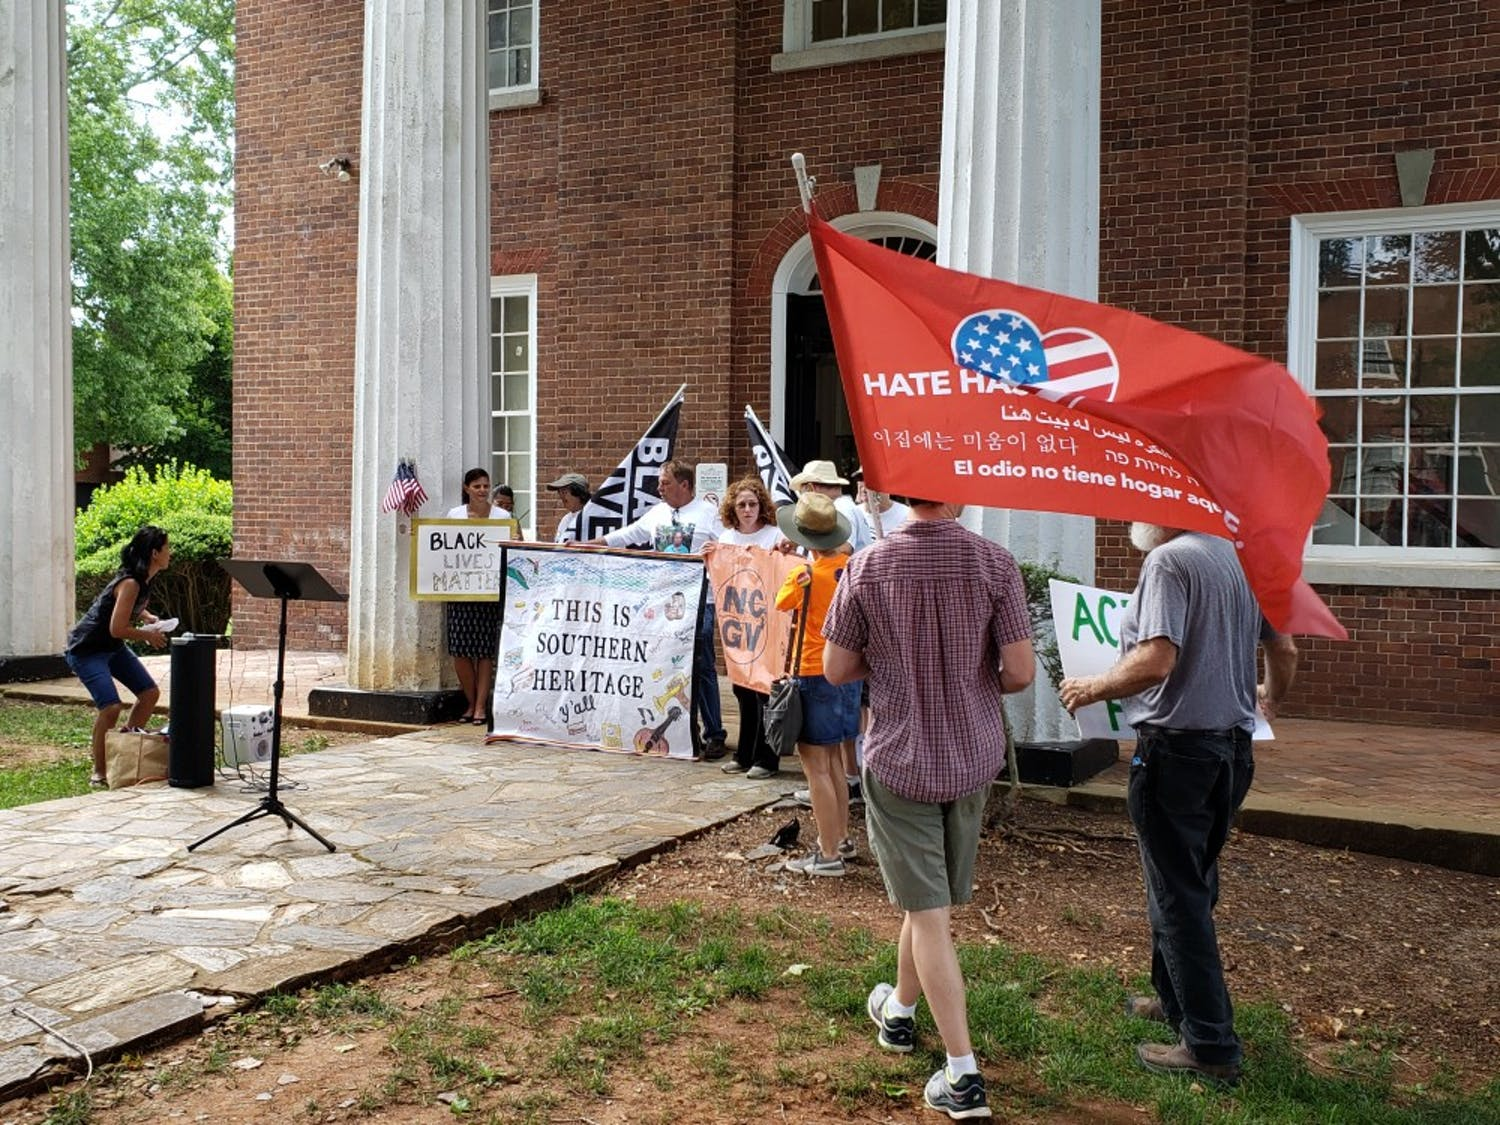 The Hate-Free Schools Coalition sponsored an emergency press conference in front of the historic Orange County Courthouse in Hillsborough on Aug. 10 to call for stricter gun reform.